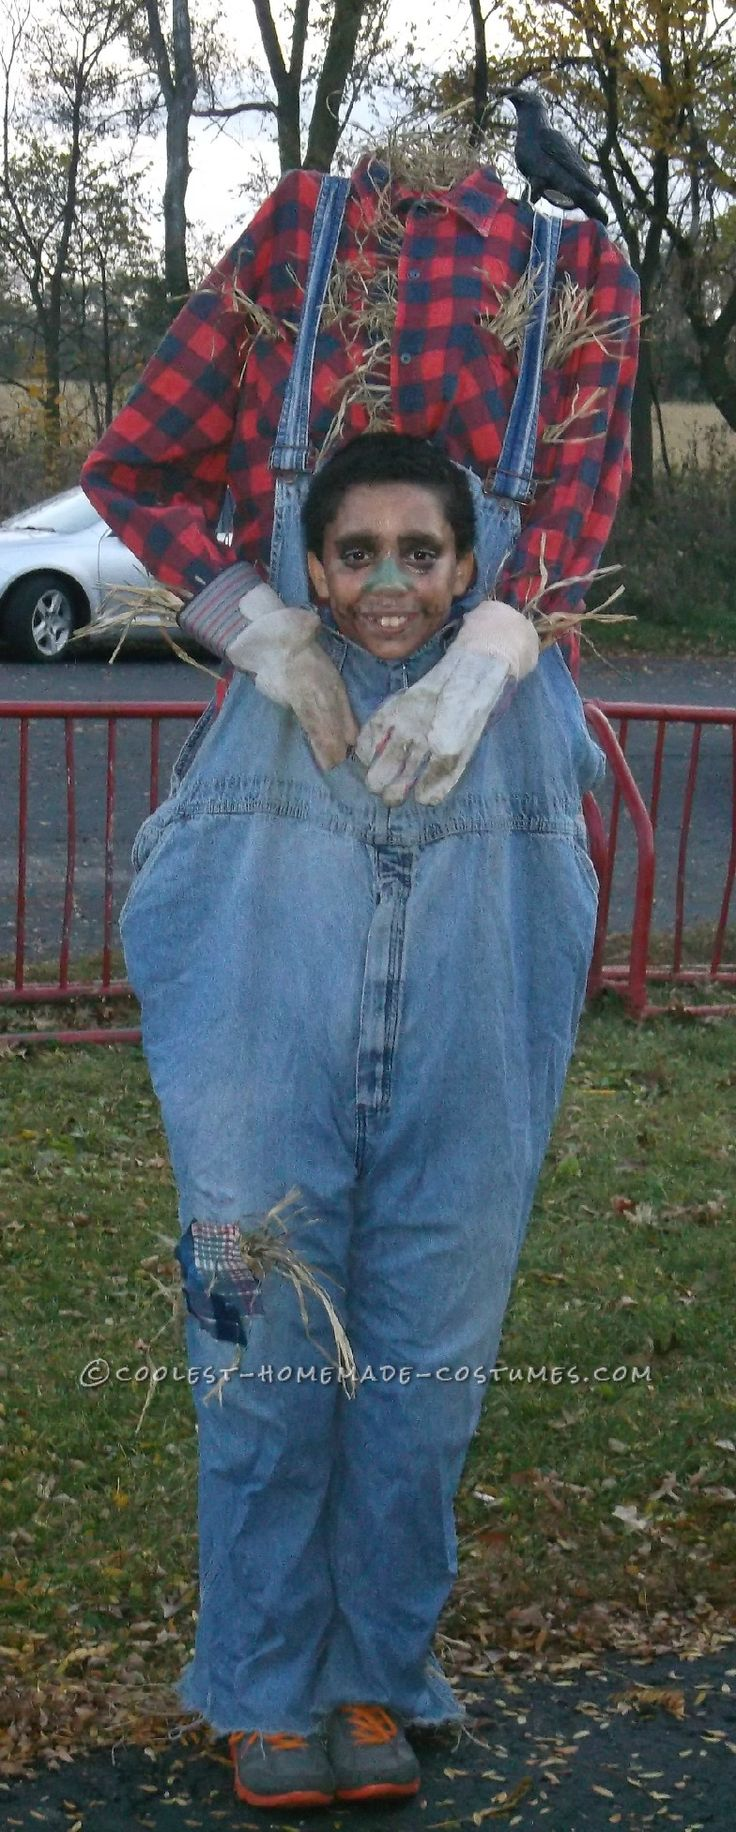 Headless Costume: Scarecrow Gone to the Birds!... Coolest Halloween Costume Contest